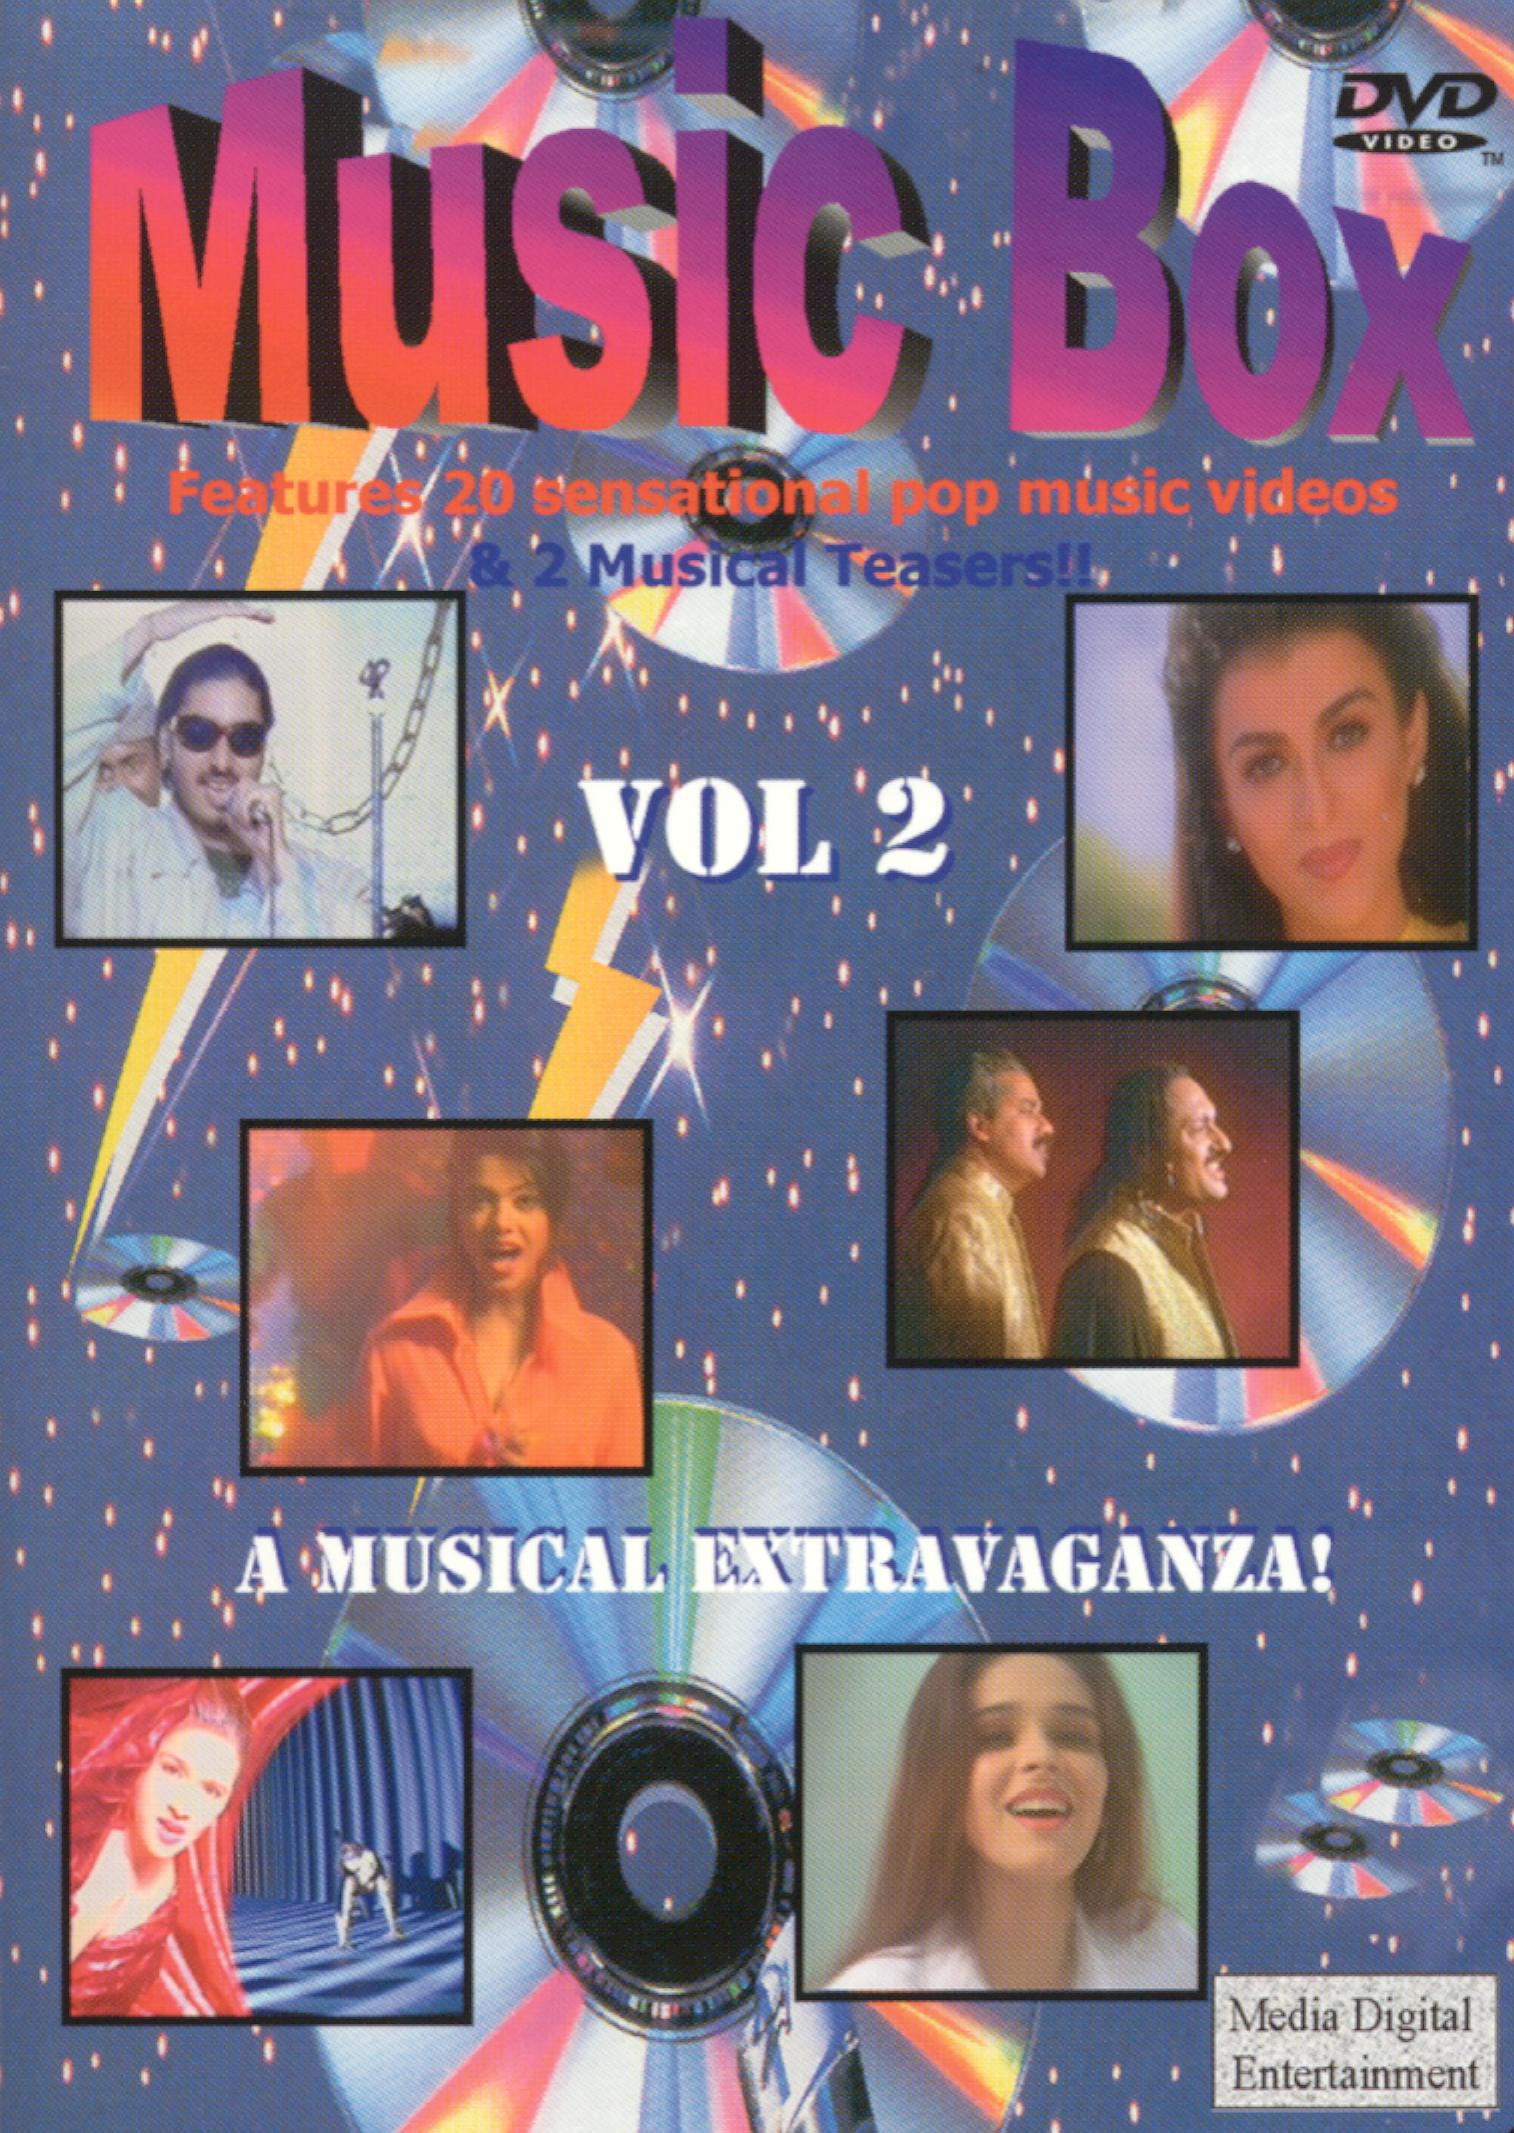 Music Box, Vol. 2